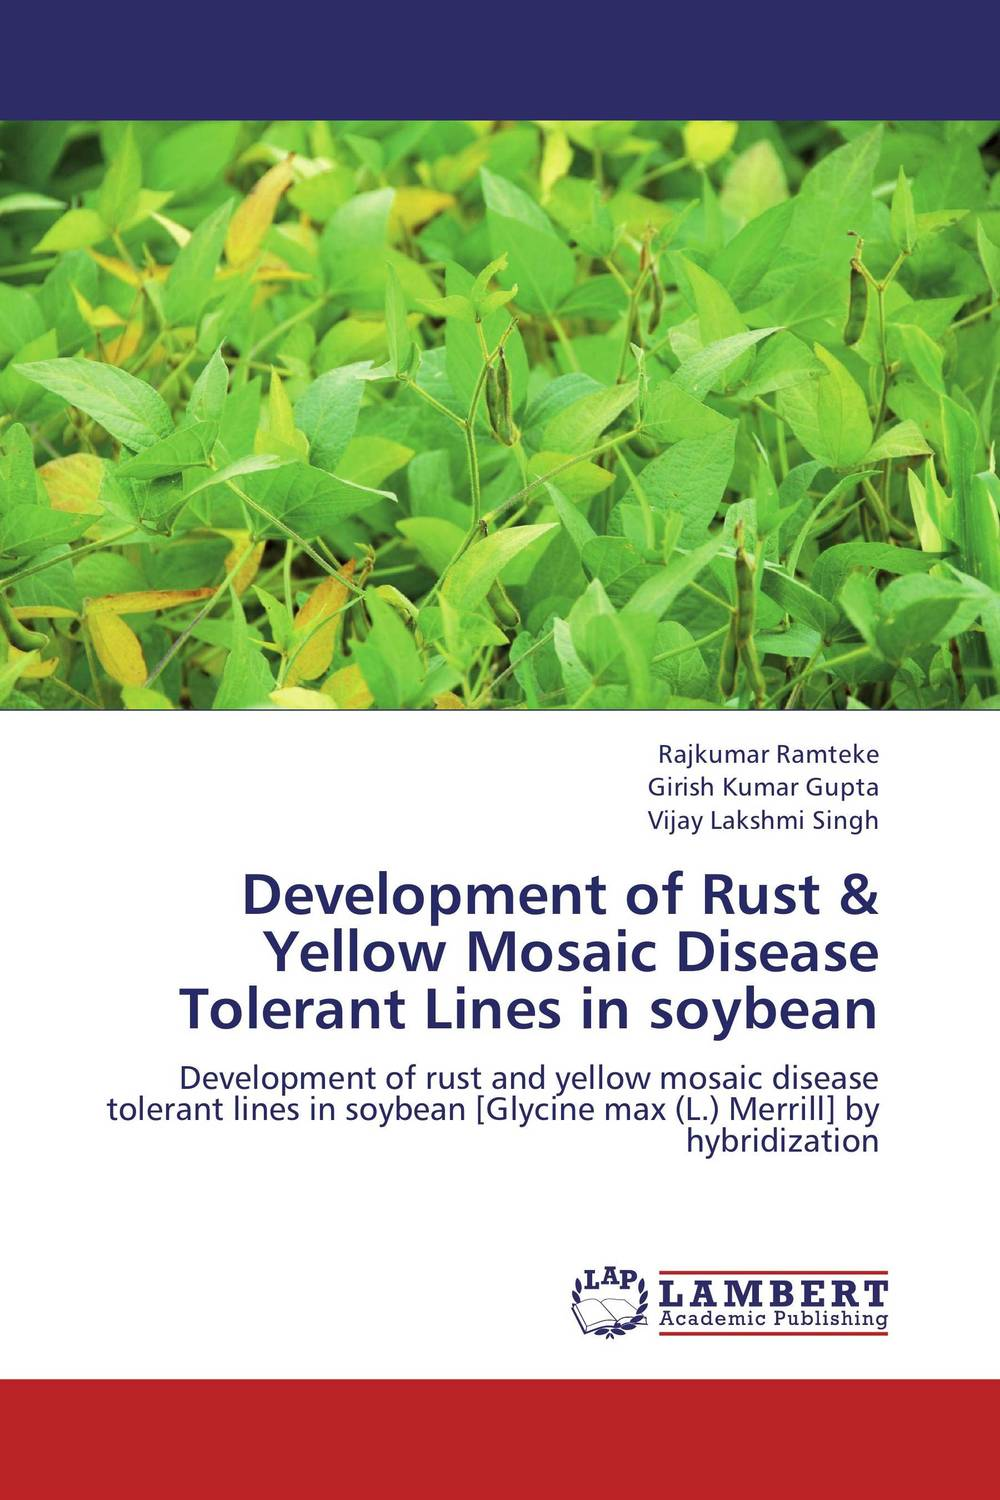 Development of Rust & Yellow Mosaic Disease Tolerant Lines in soybean polymorphisms at candidate genes for disease resistance in chicken